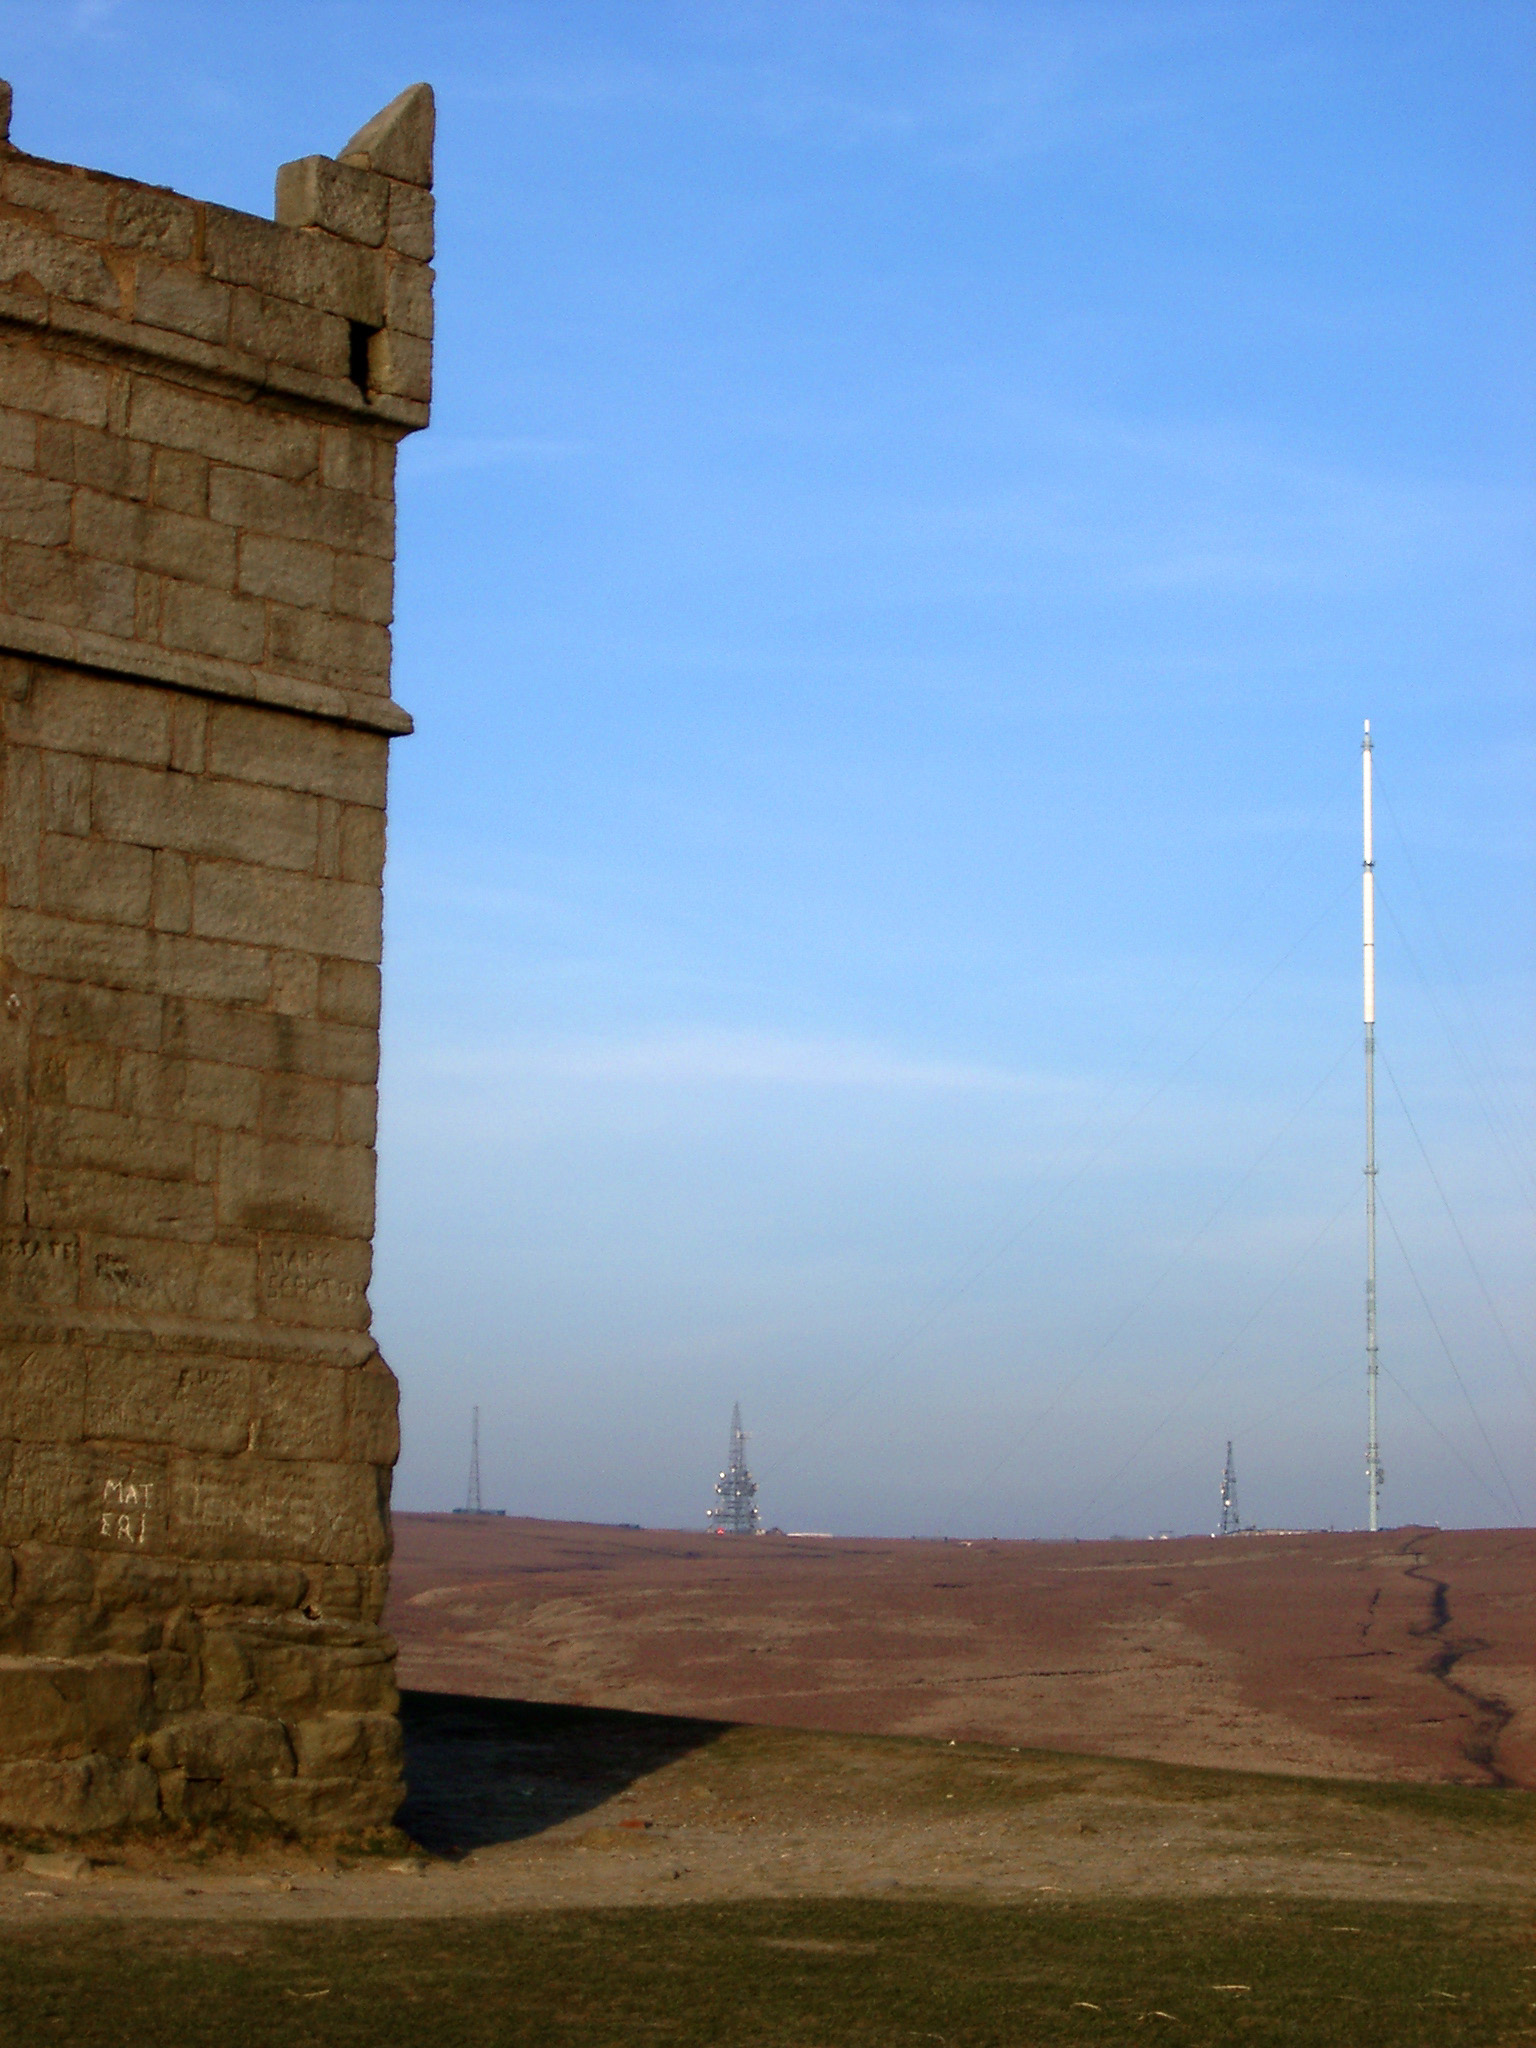 Old Concrete Tower on the Landmark Rivington Pike in Lancashire, England. Captured with Light Blue Sky Background.